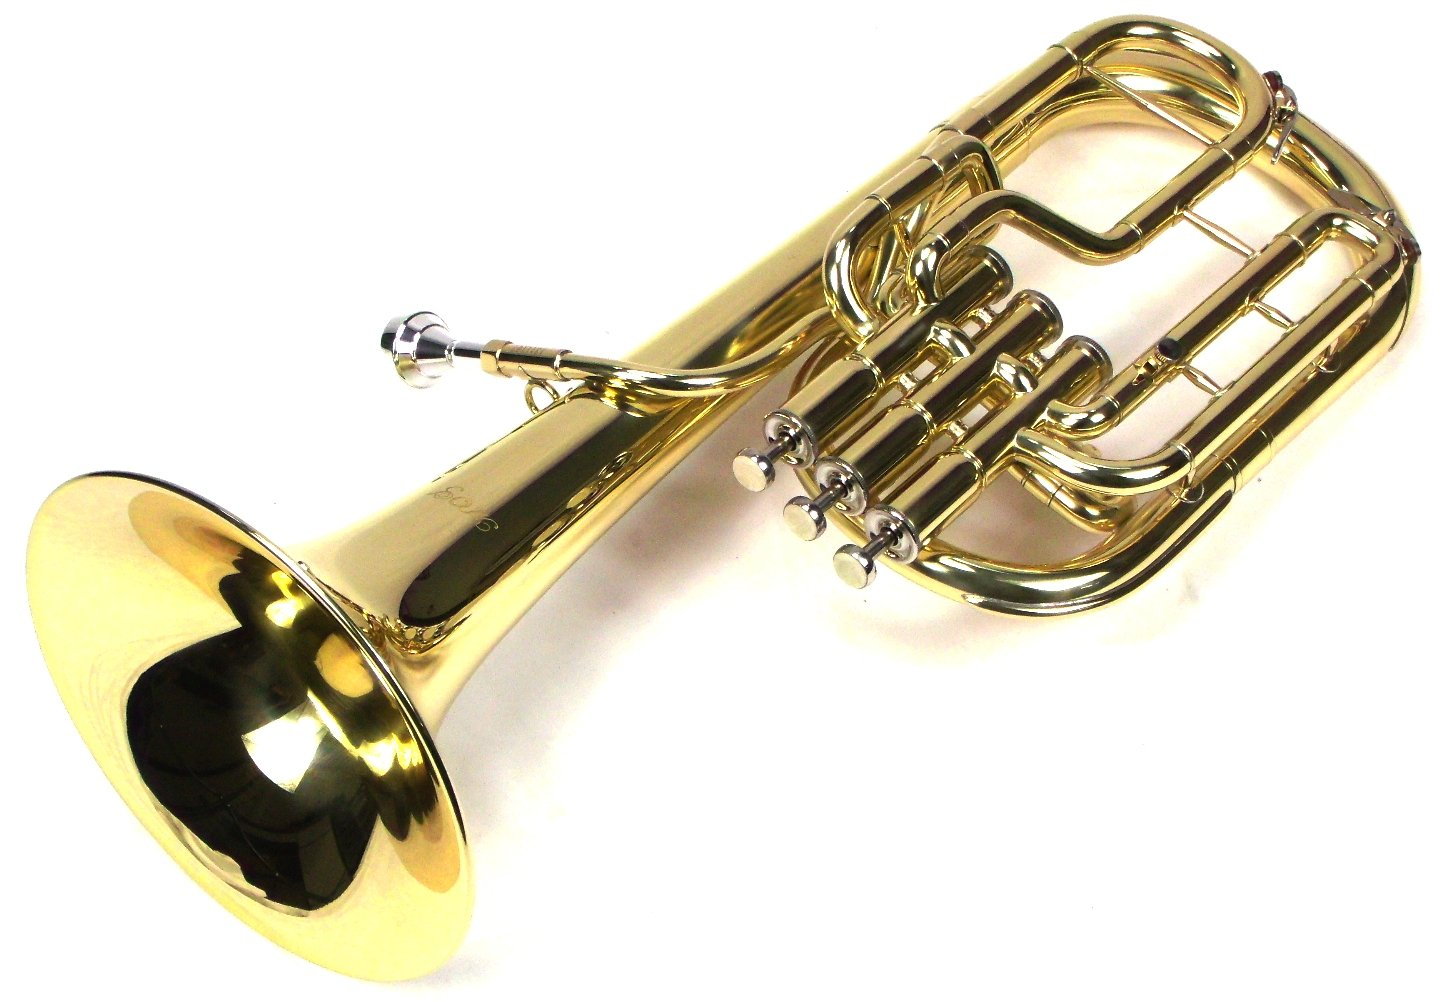 Intermediate Monel Pistons Alto Horn w/Case & Mouthpiece-Gold Lacquer Finish by Moz (Image #3)